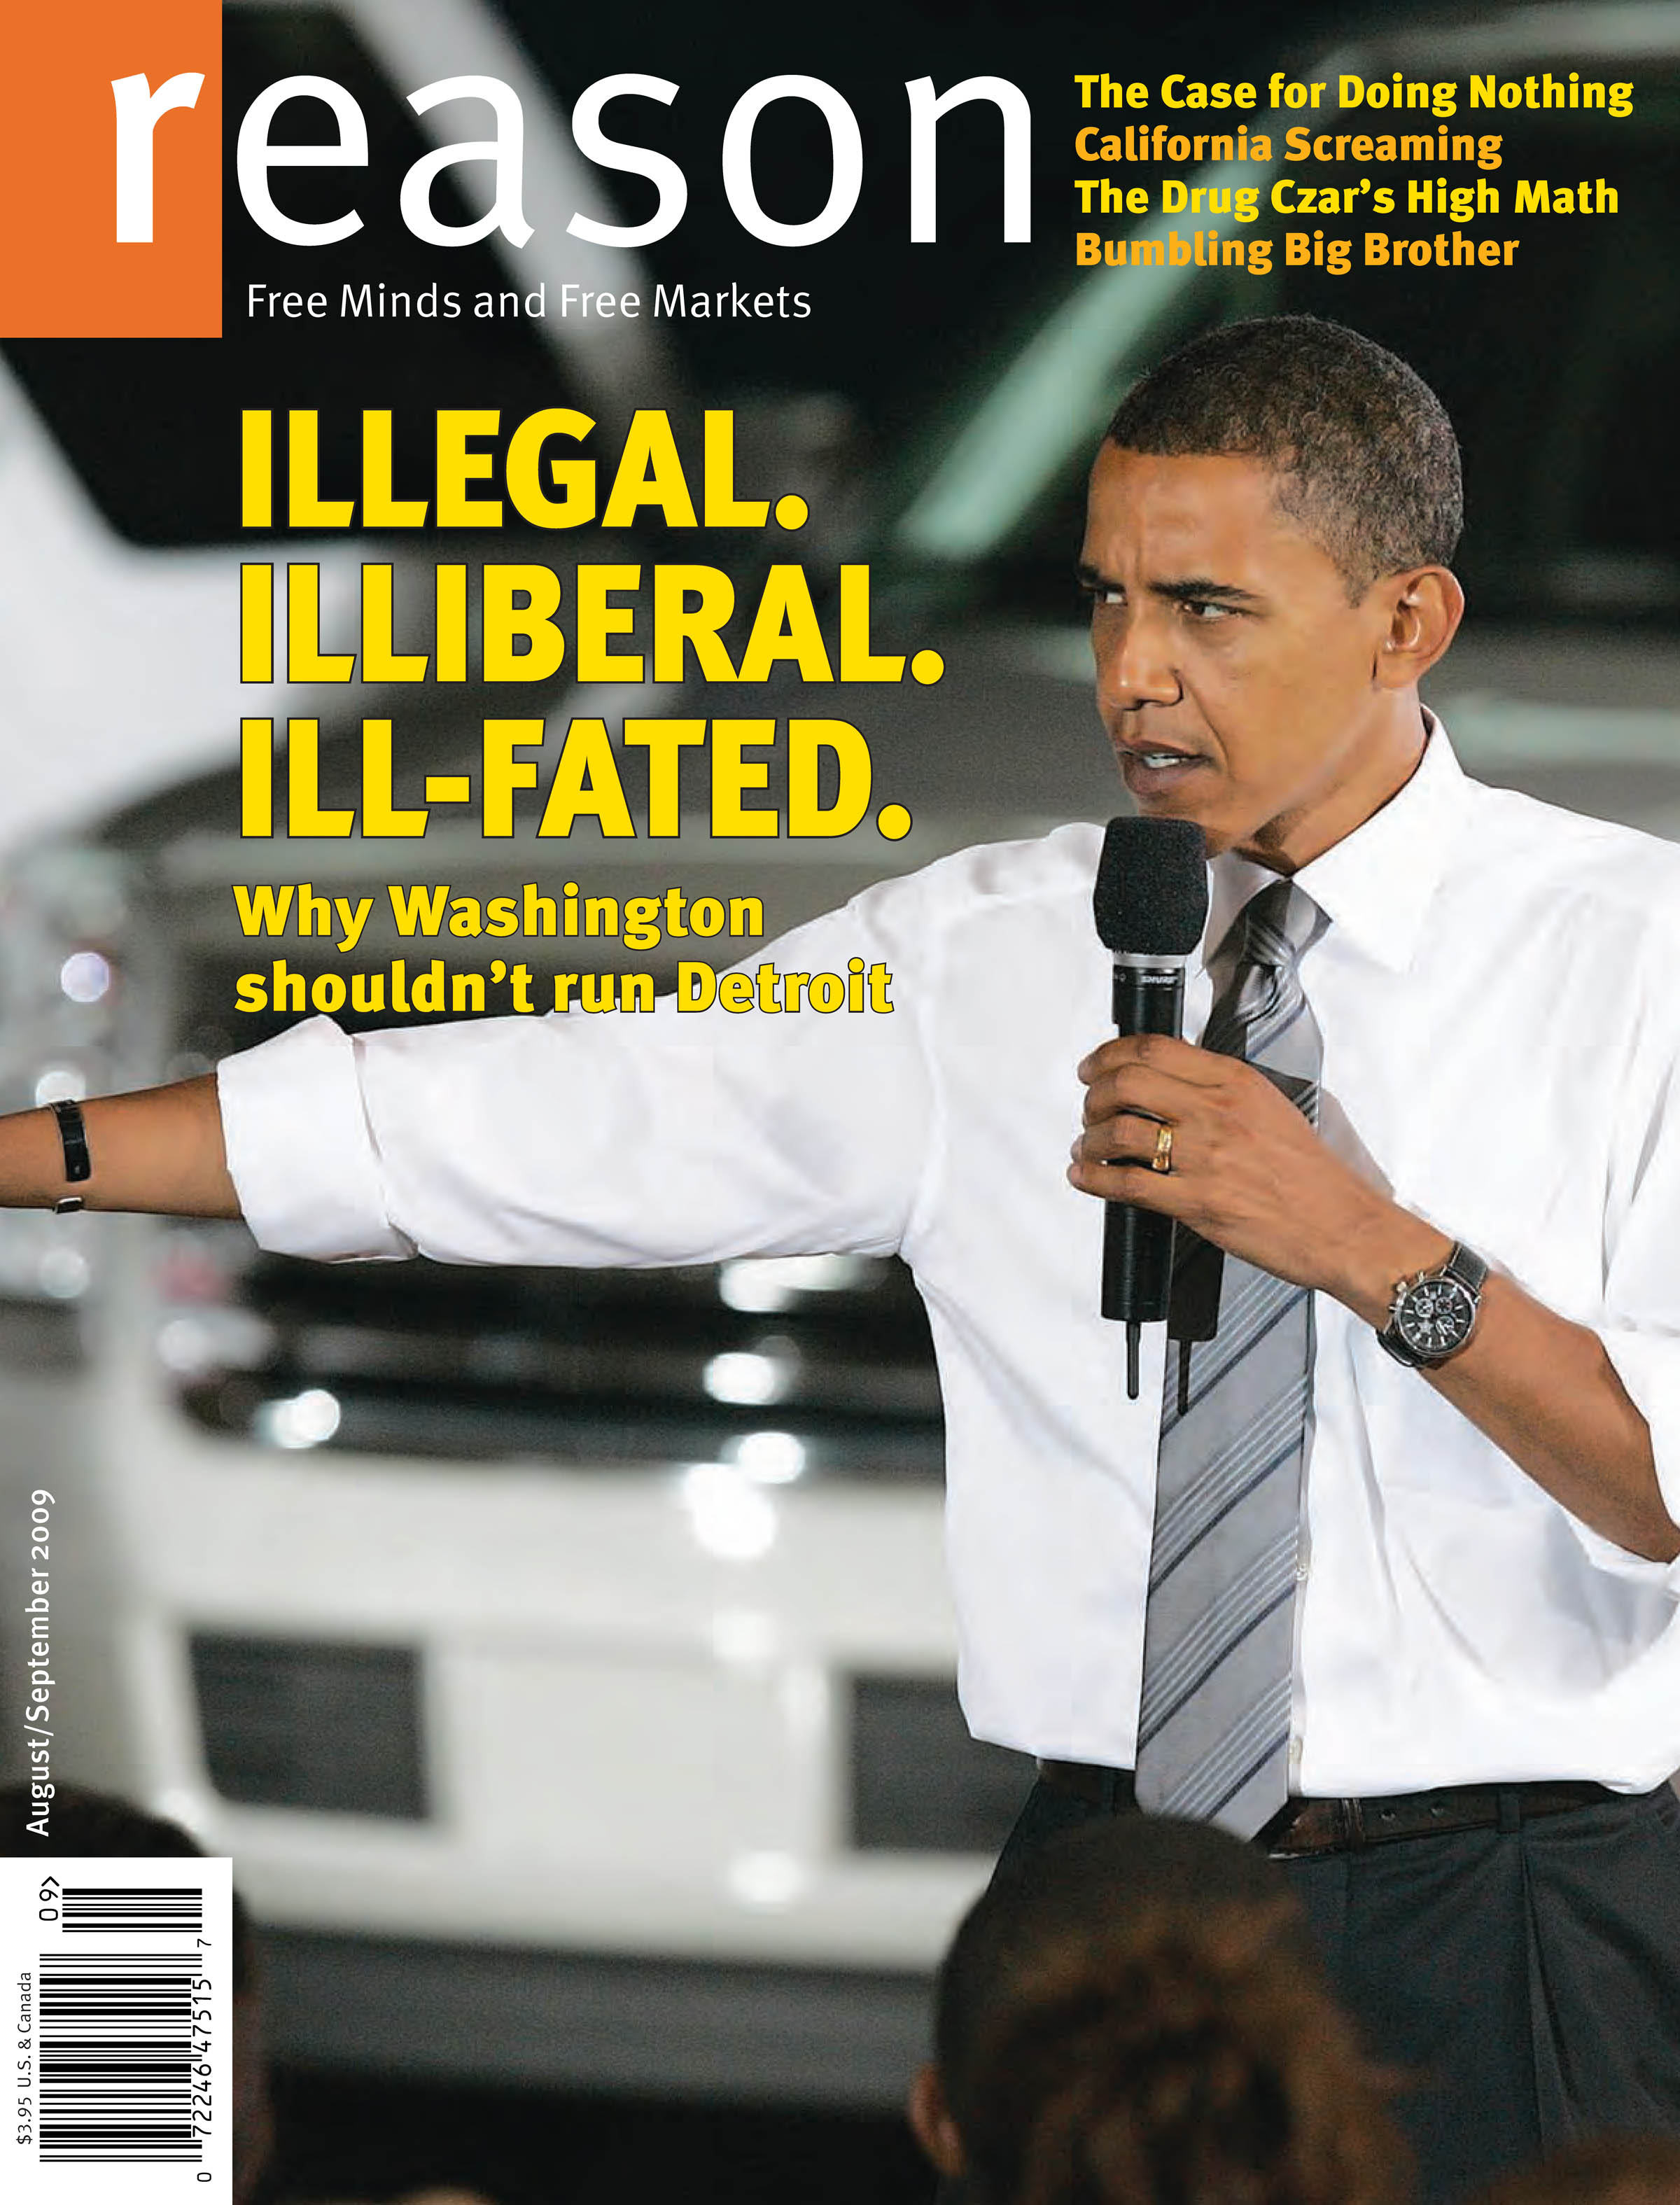 Reason Magazine, August/September 2009 cover image